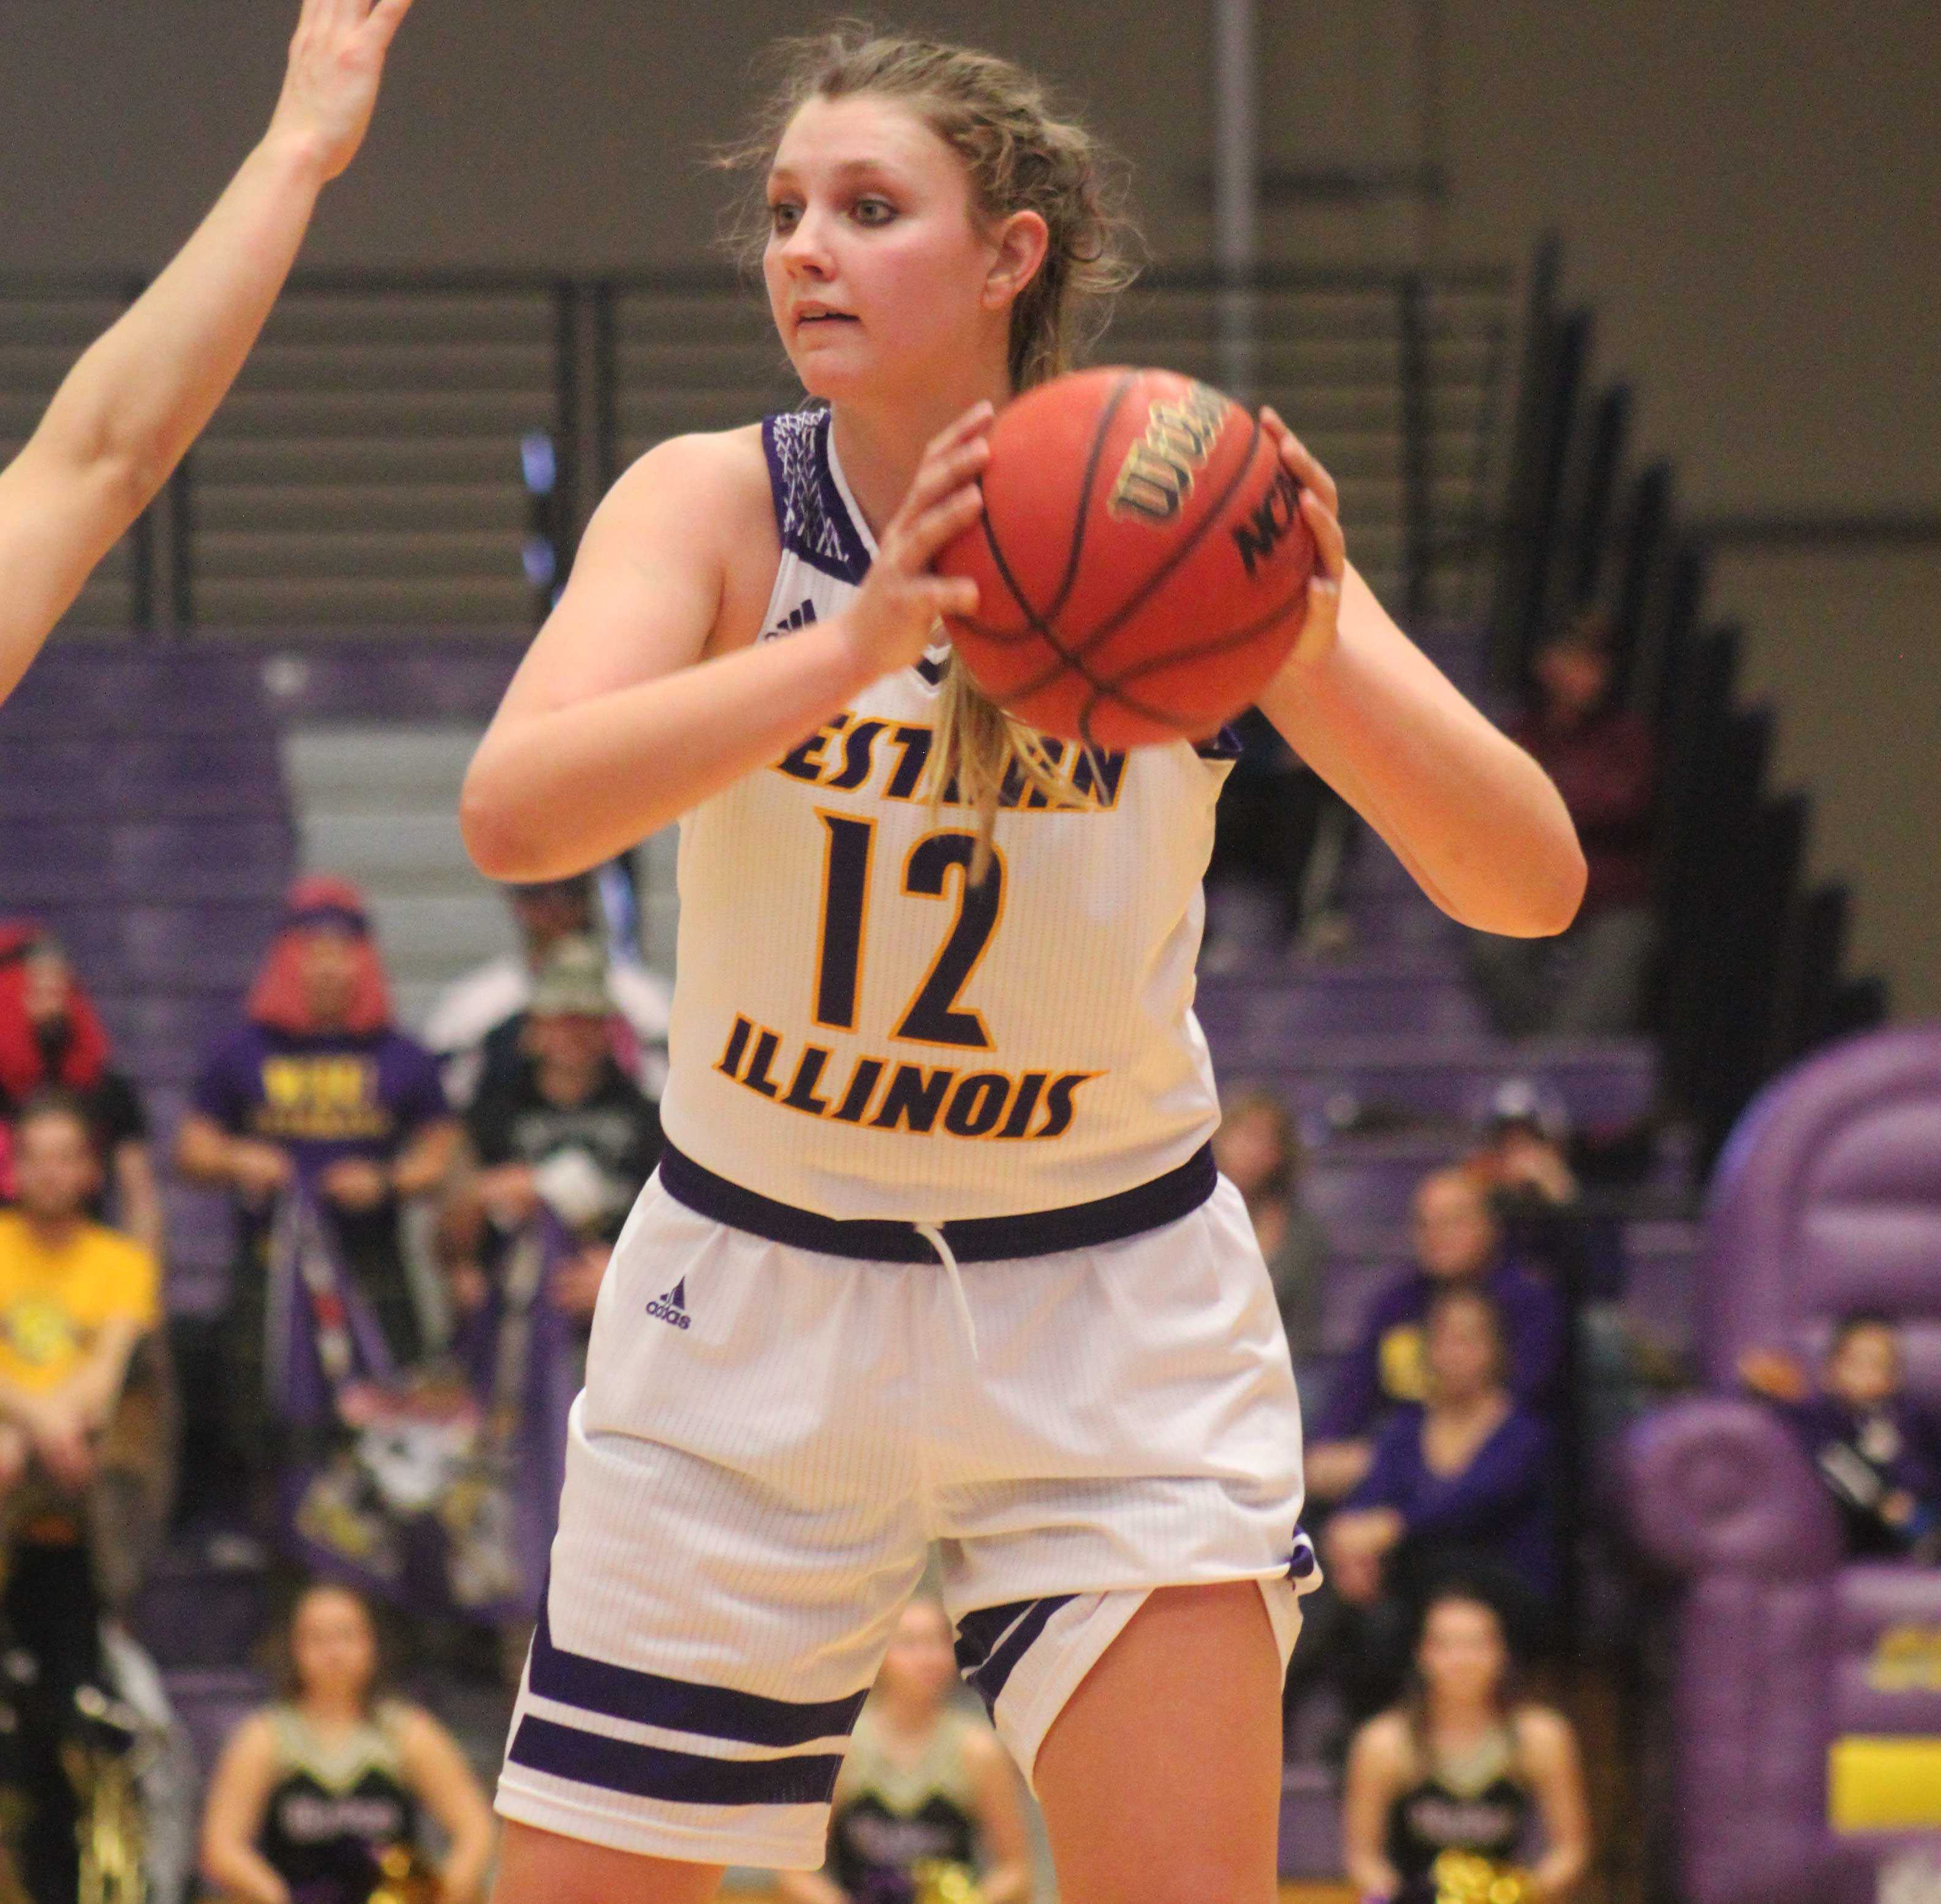 Morgan Blumer set a program record for 3-pointers in a single season on Saturday and scored 22 points